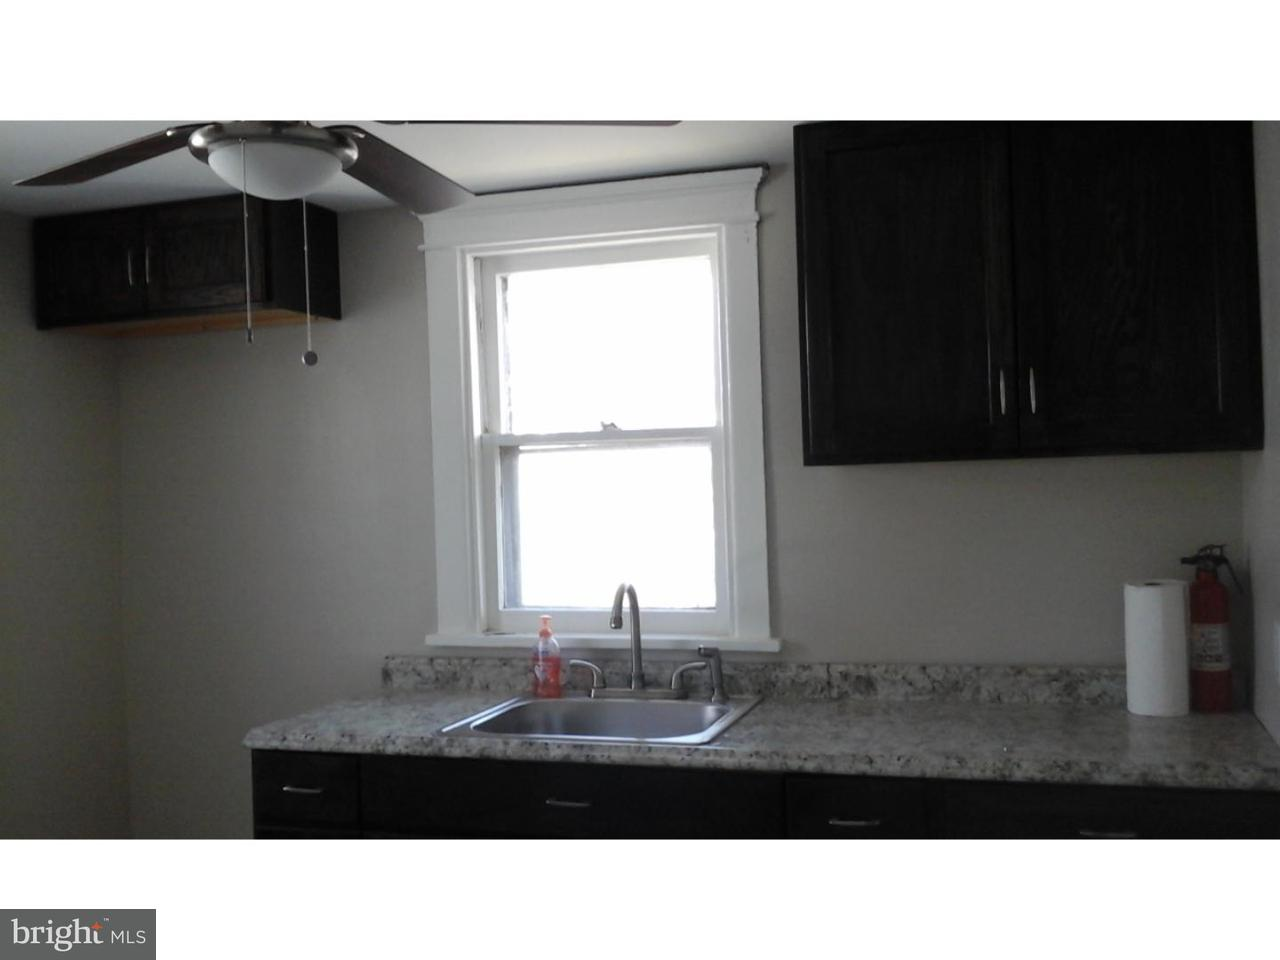 Single Family Home for Rent at 512 ARNDT AVE #B Riverside, New Jersey 08075 United States